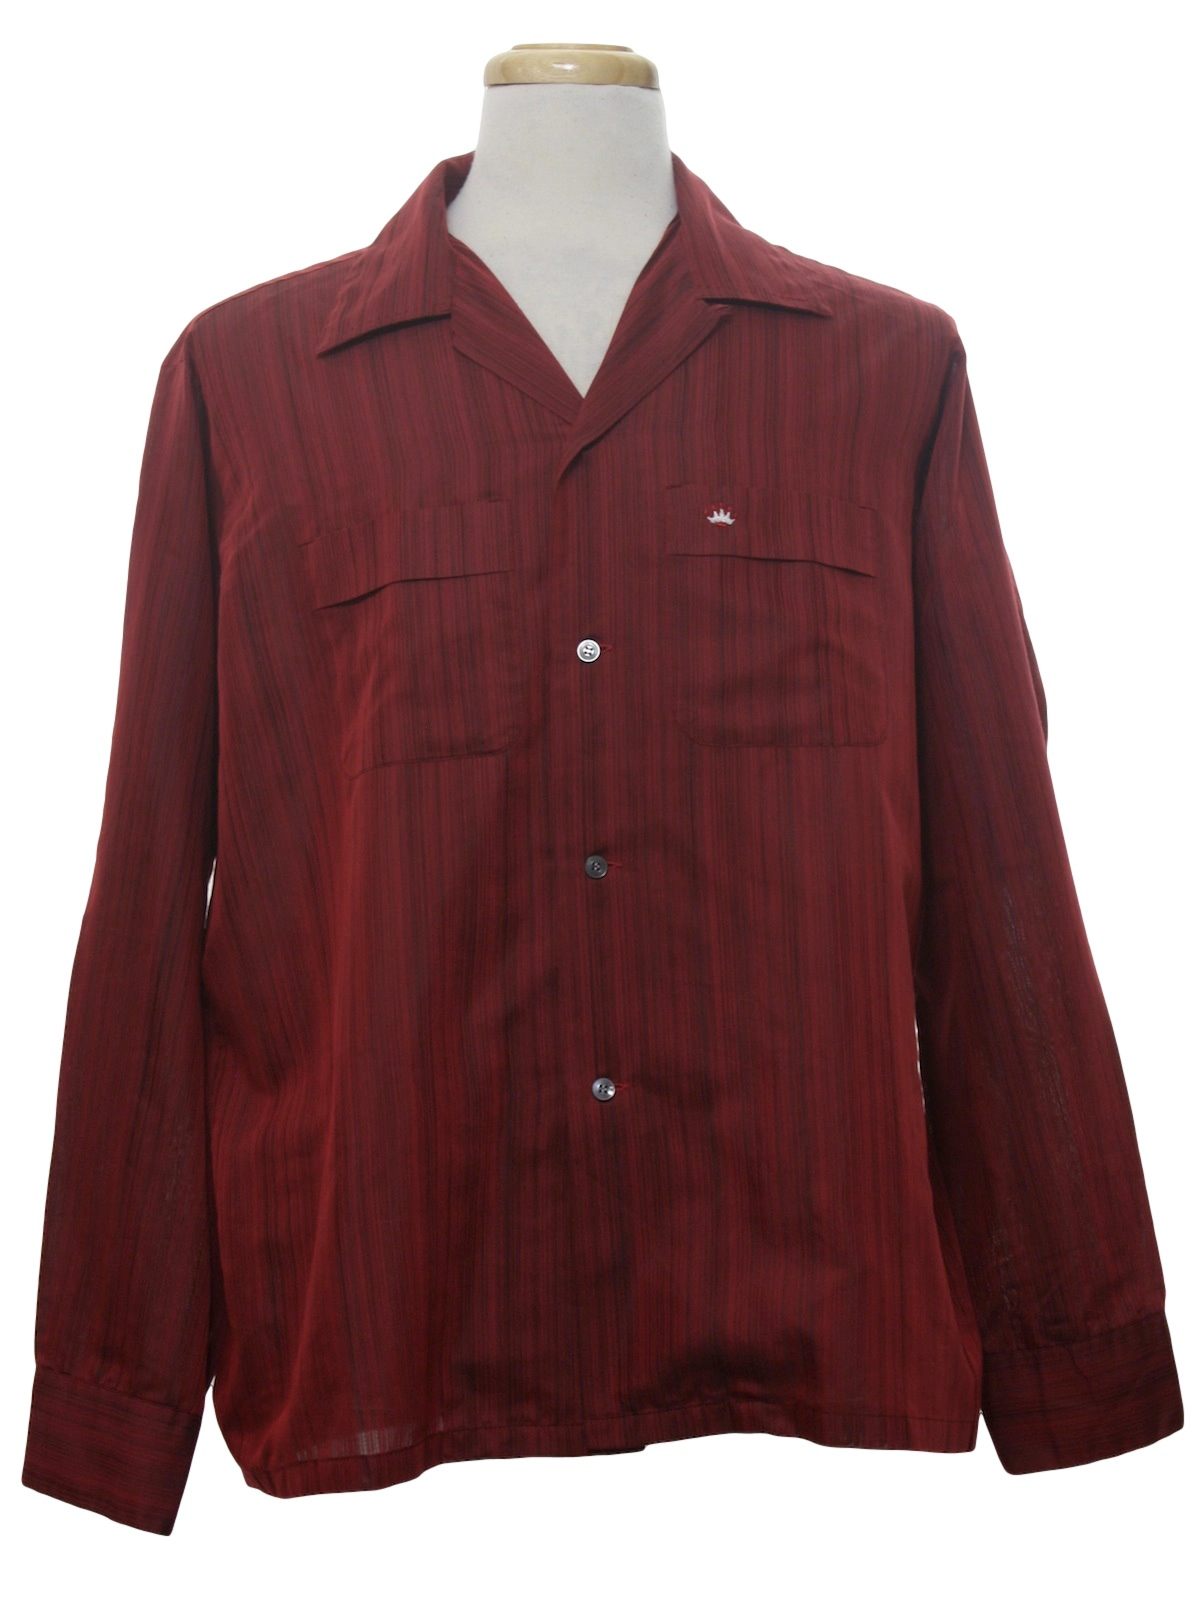 Sixties vintage shirt early 60s needles of california for Button up collared sport shirts